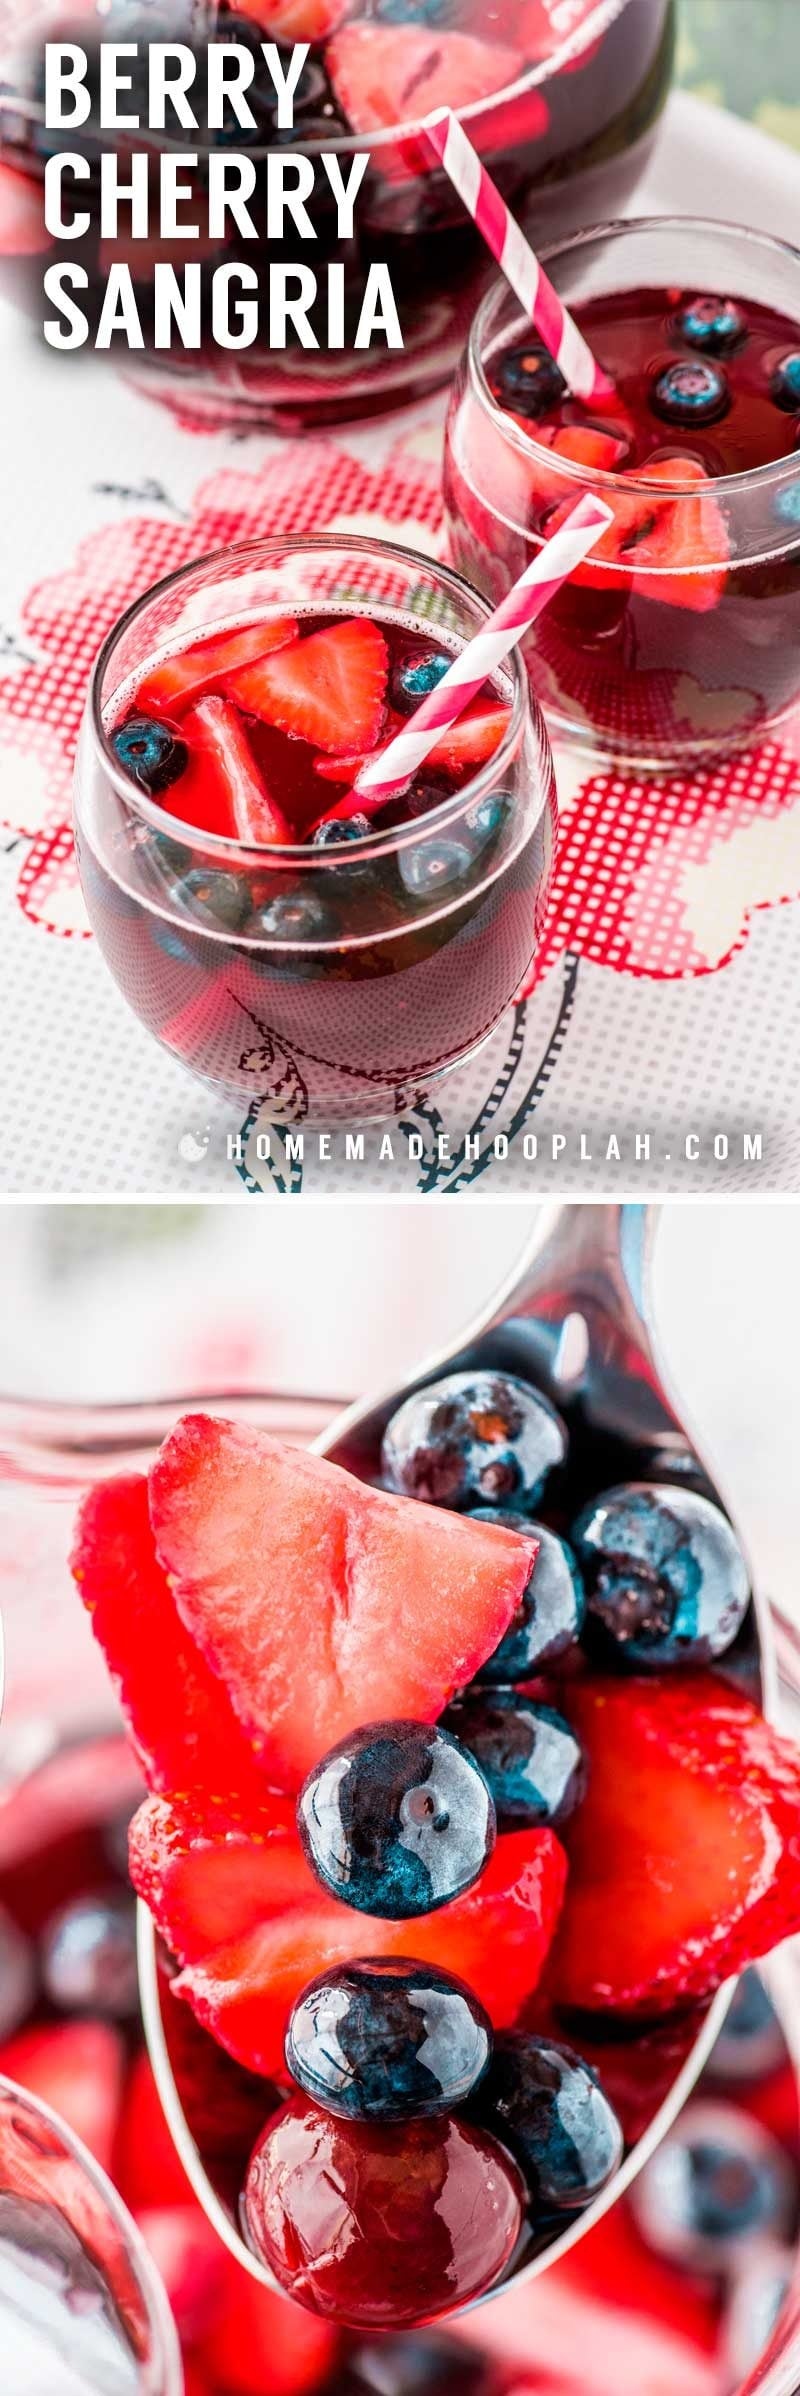 Berry Cherry Sangria! Fresh cherries, strawberries, and blueberries are soaked in brandy, cherry-pomegranate juice, and classic red wine to make this sangria with cherries! | HomemadeHooplah.com